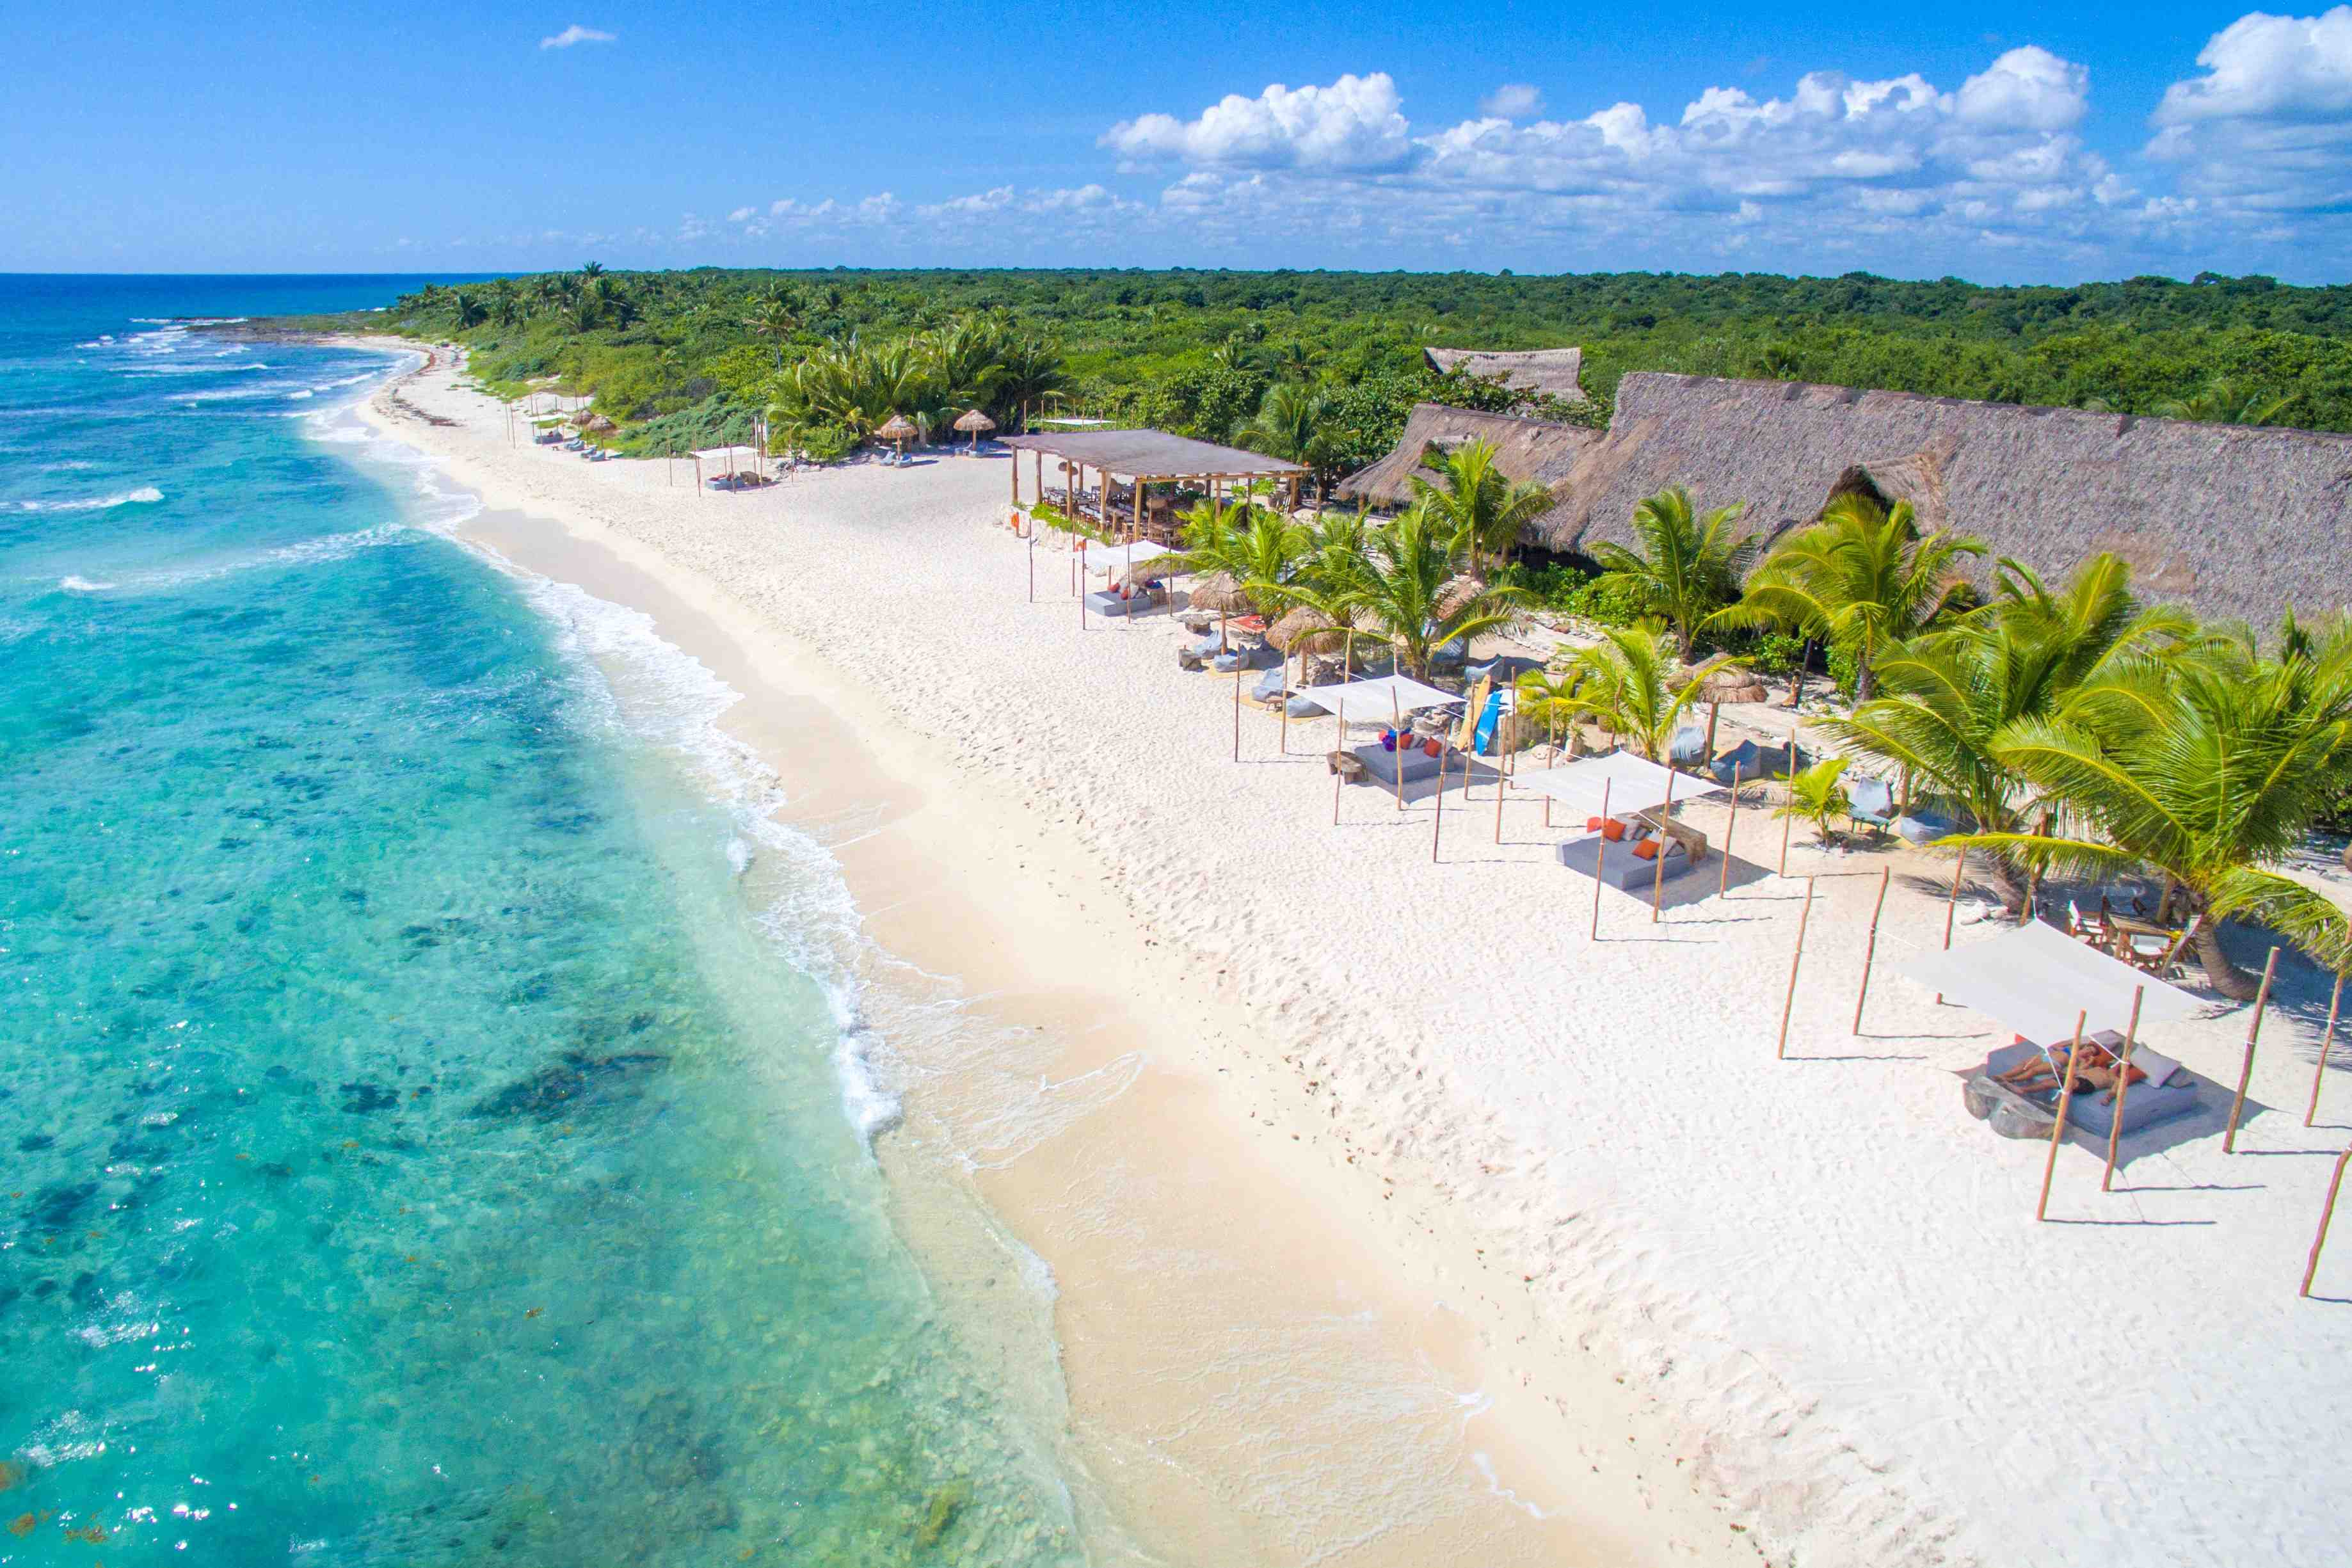 Tulum And Yalku Tour From The Riviera - Last Minute Tours in Cancún and Riviera Maya